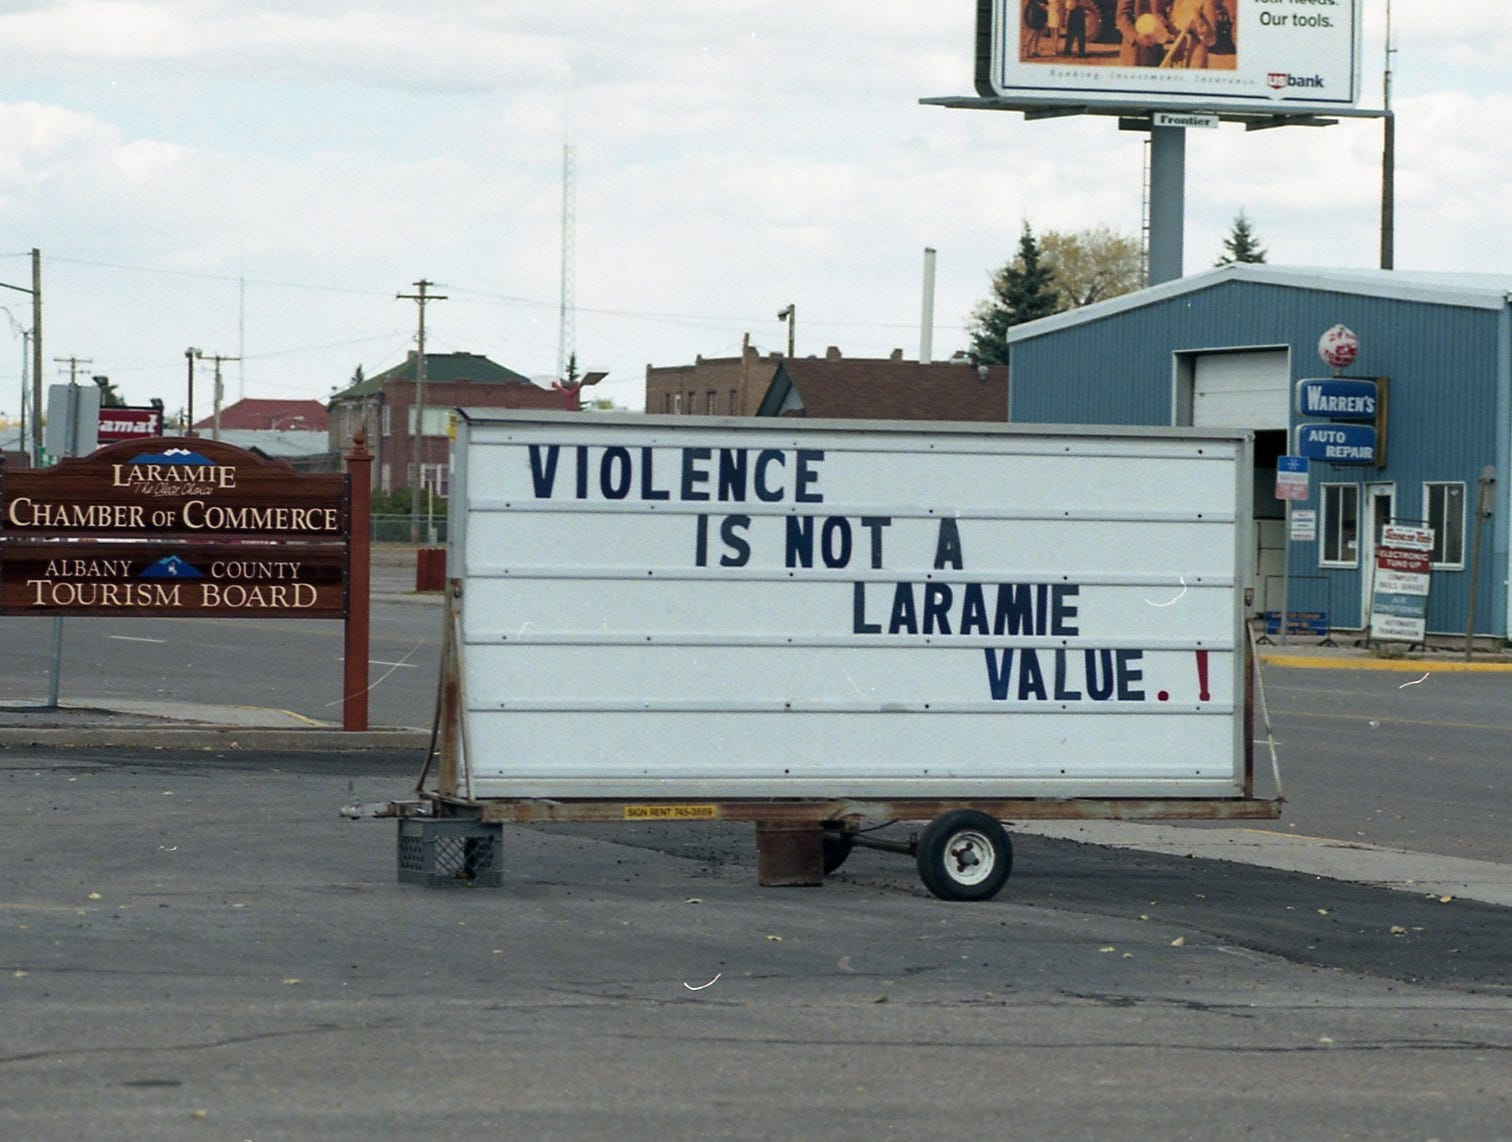 A sign outside the Laramie Chamber of Commerce after the killing of Wyoming University student, Matthew Shepard.